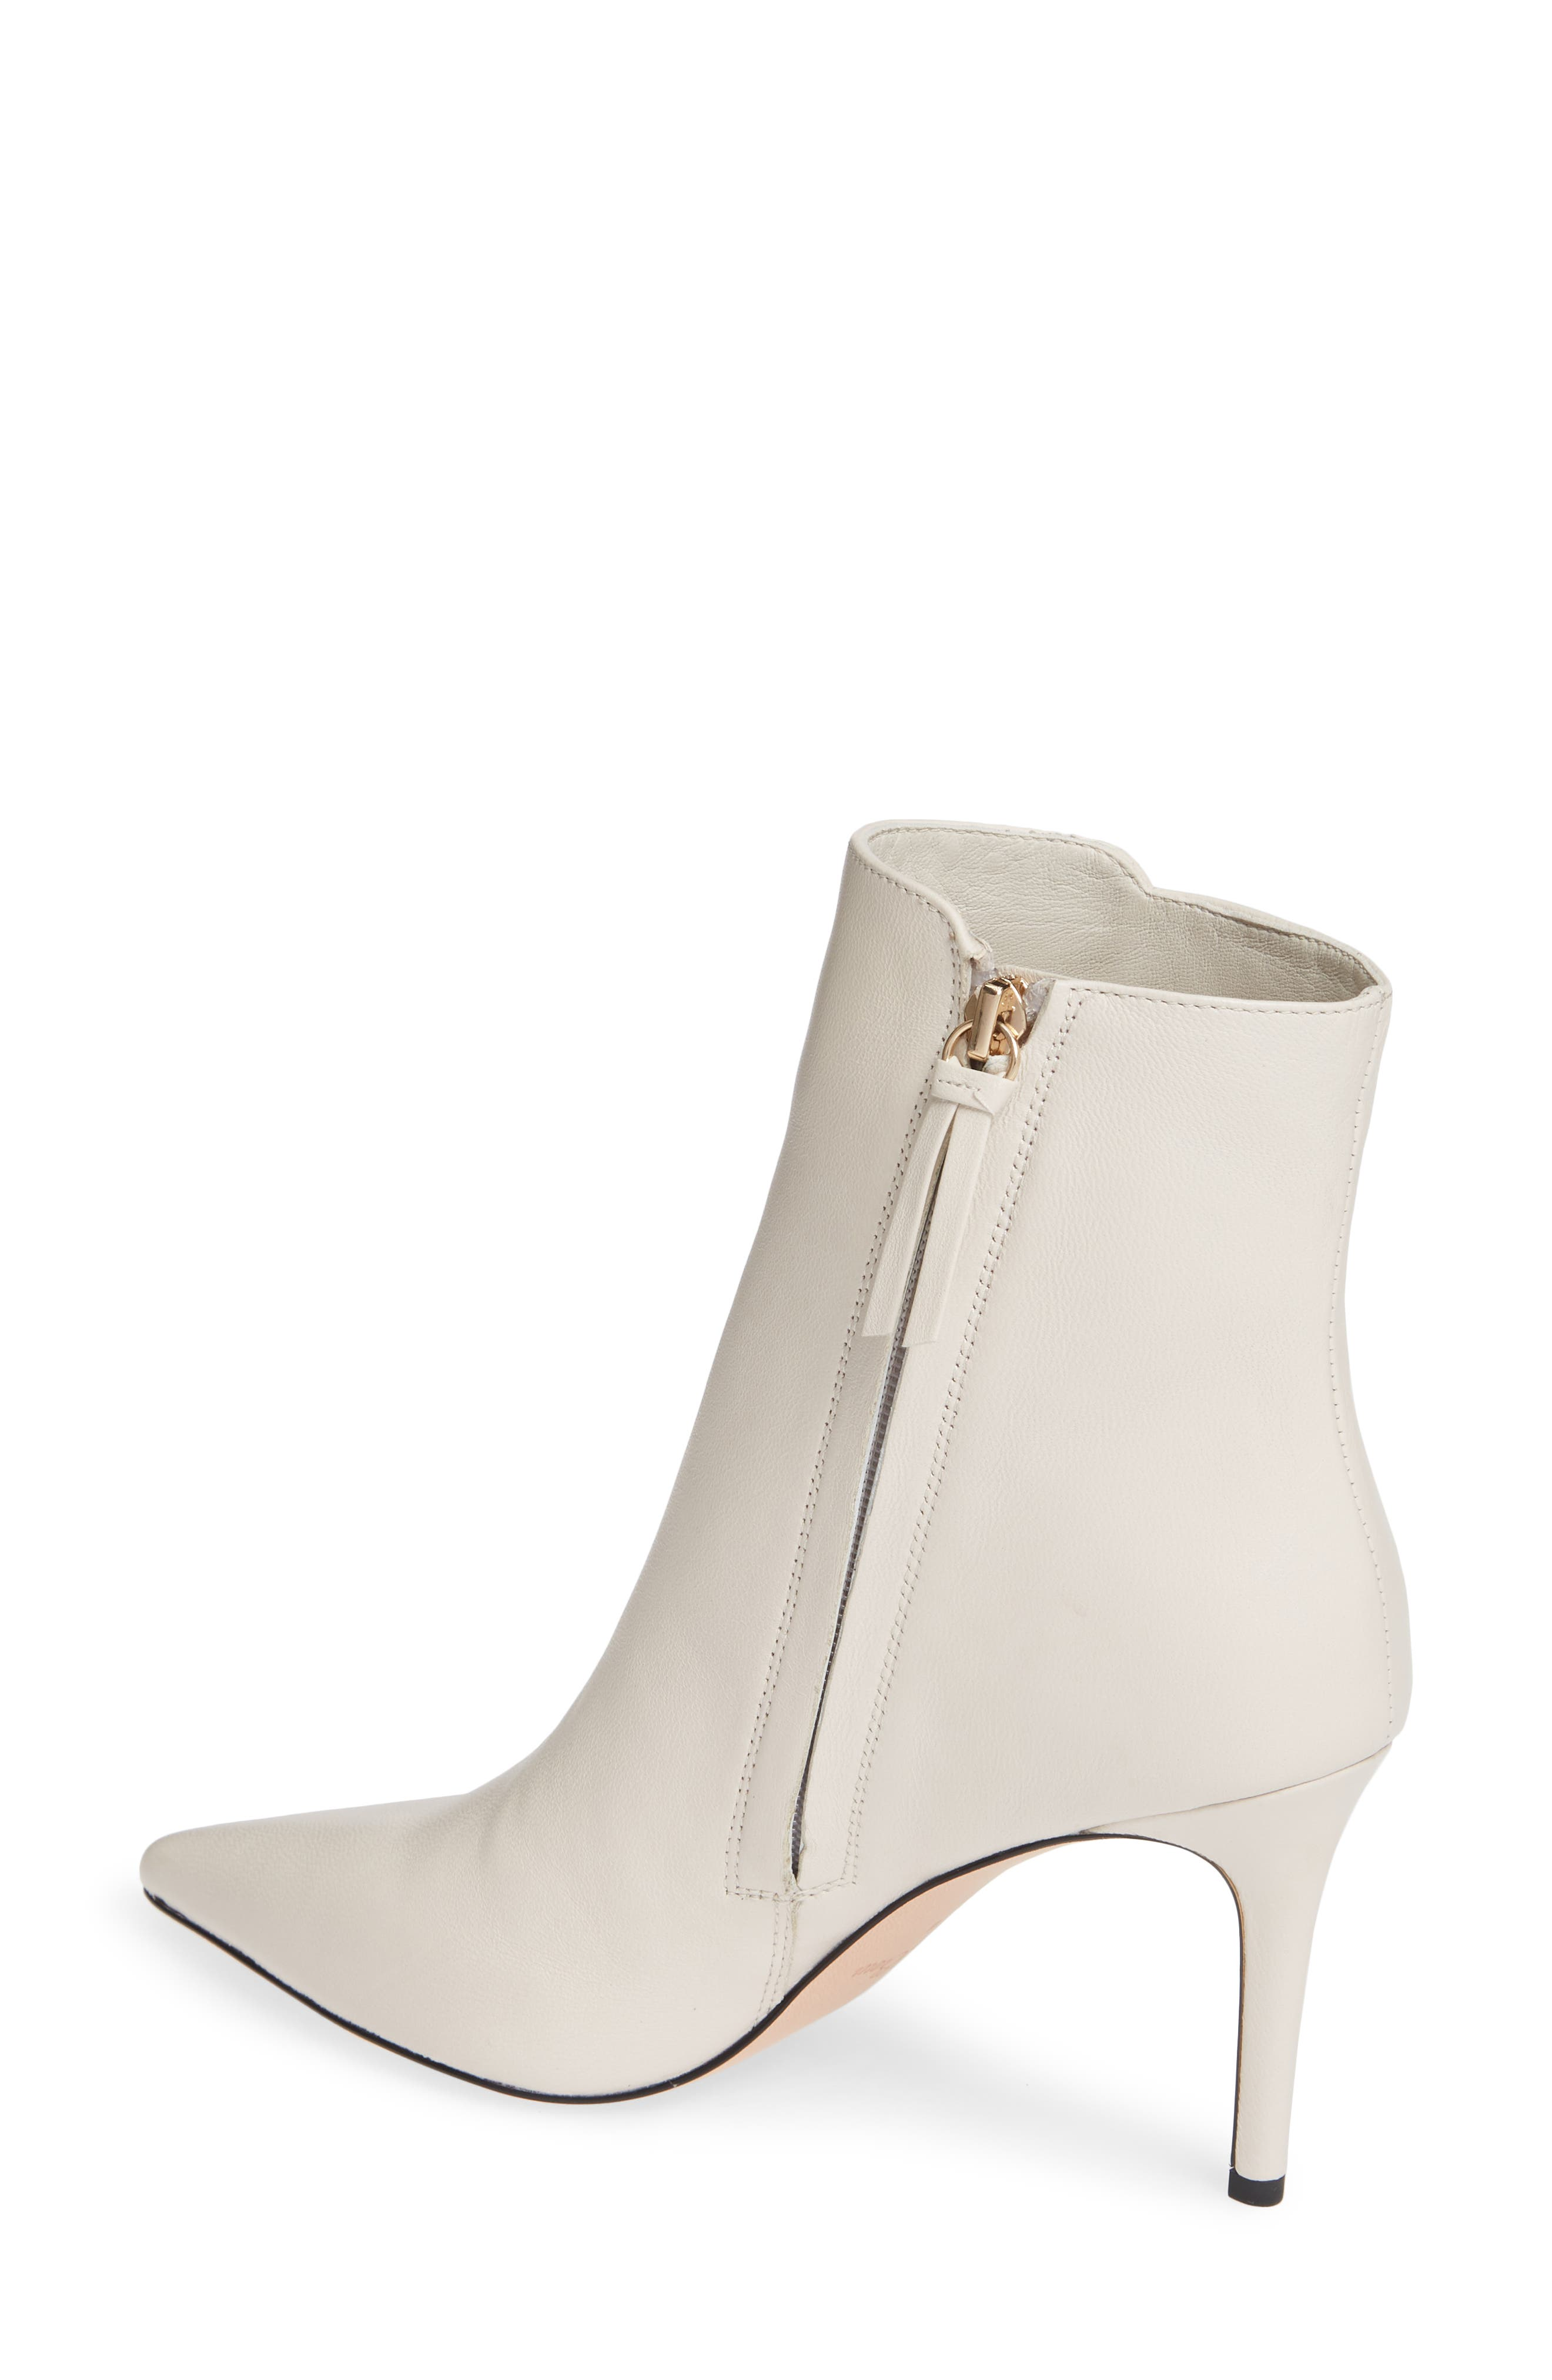 Pointed Stiletto Ankle Bootie,                             Alternate thumbnail 2, color,                             STONE LEATHER